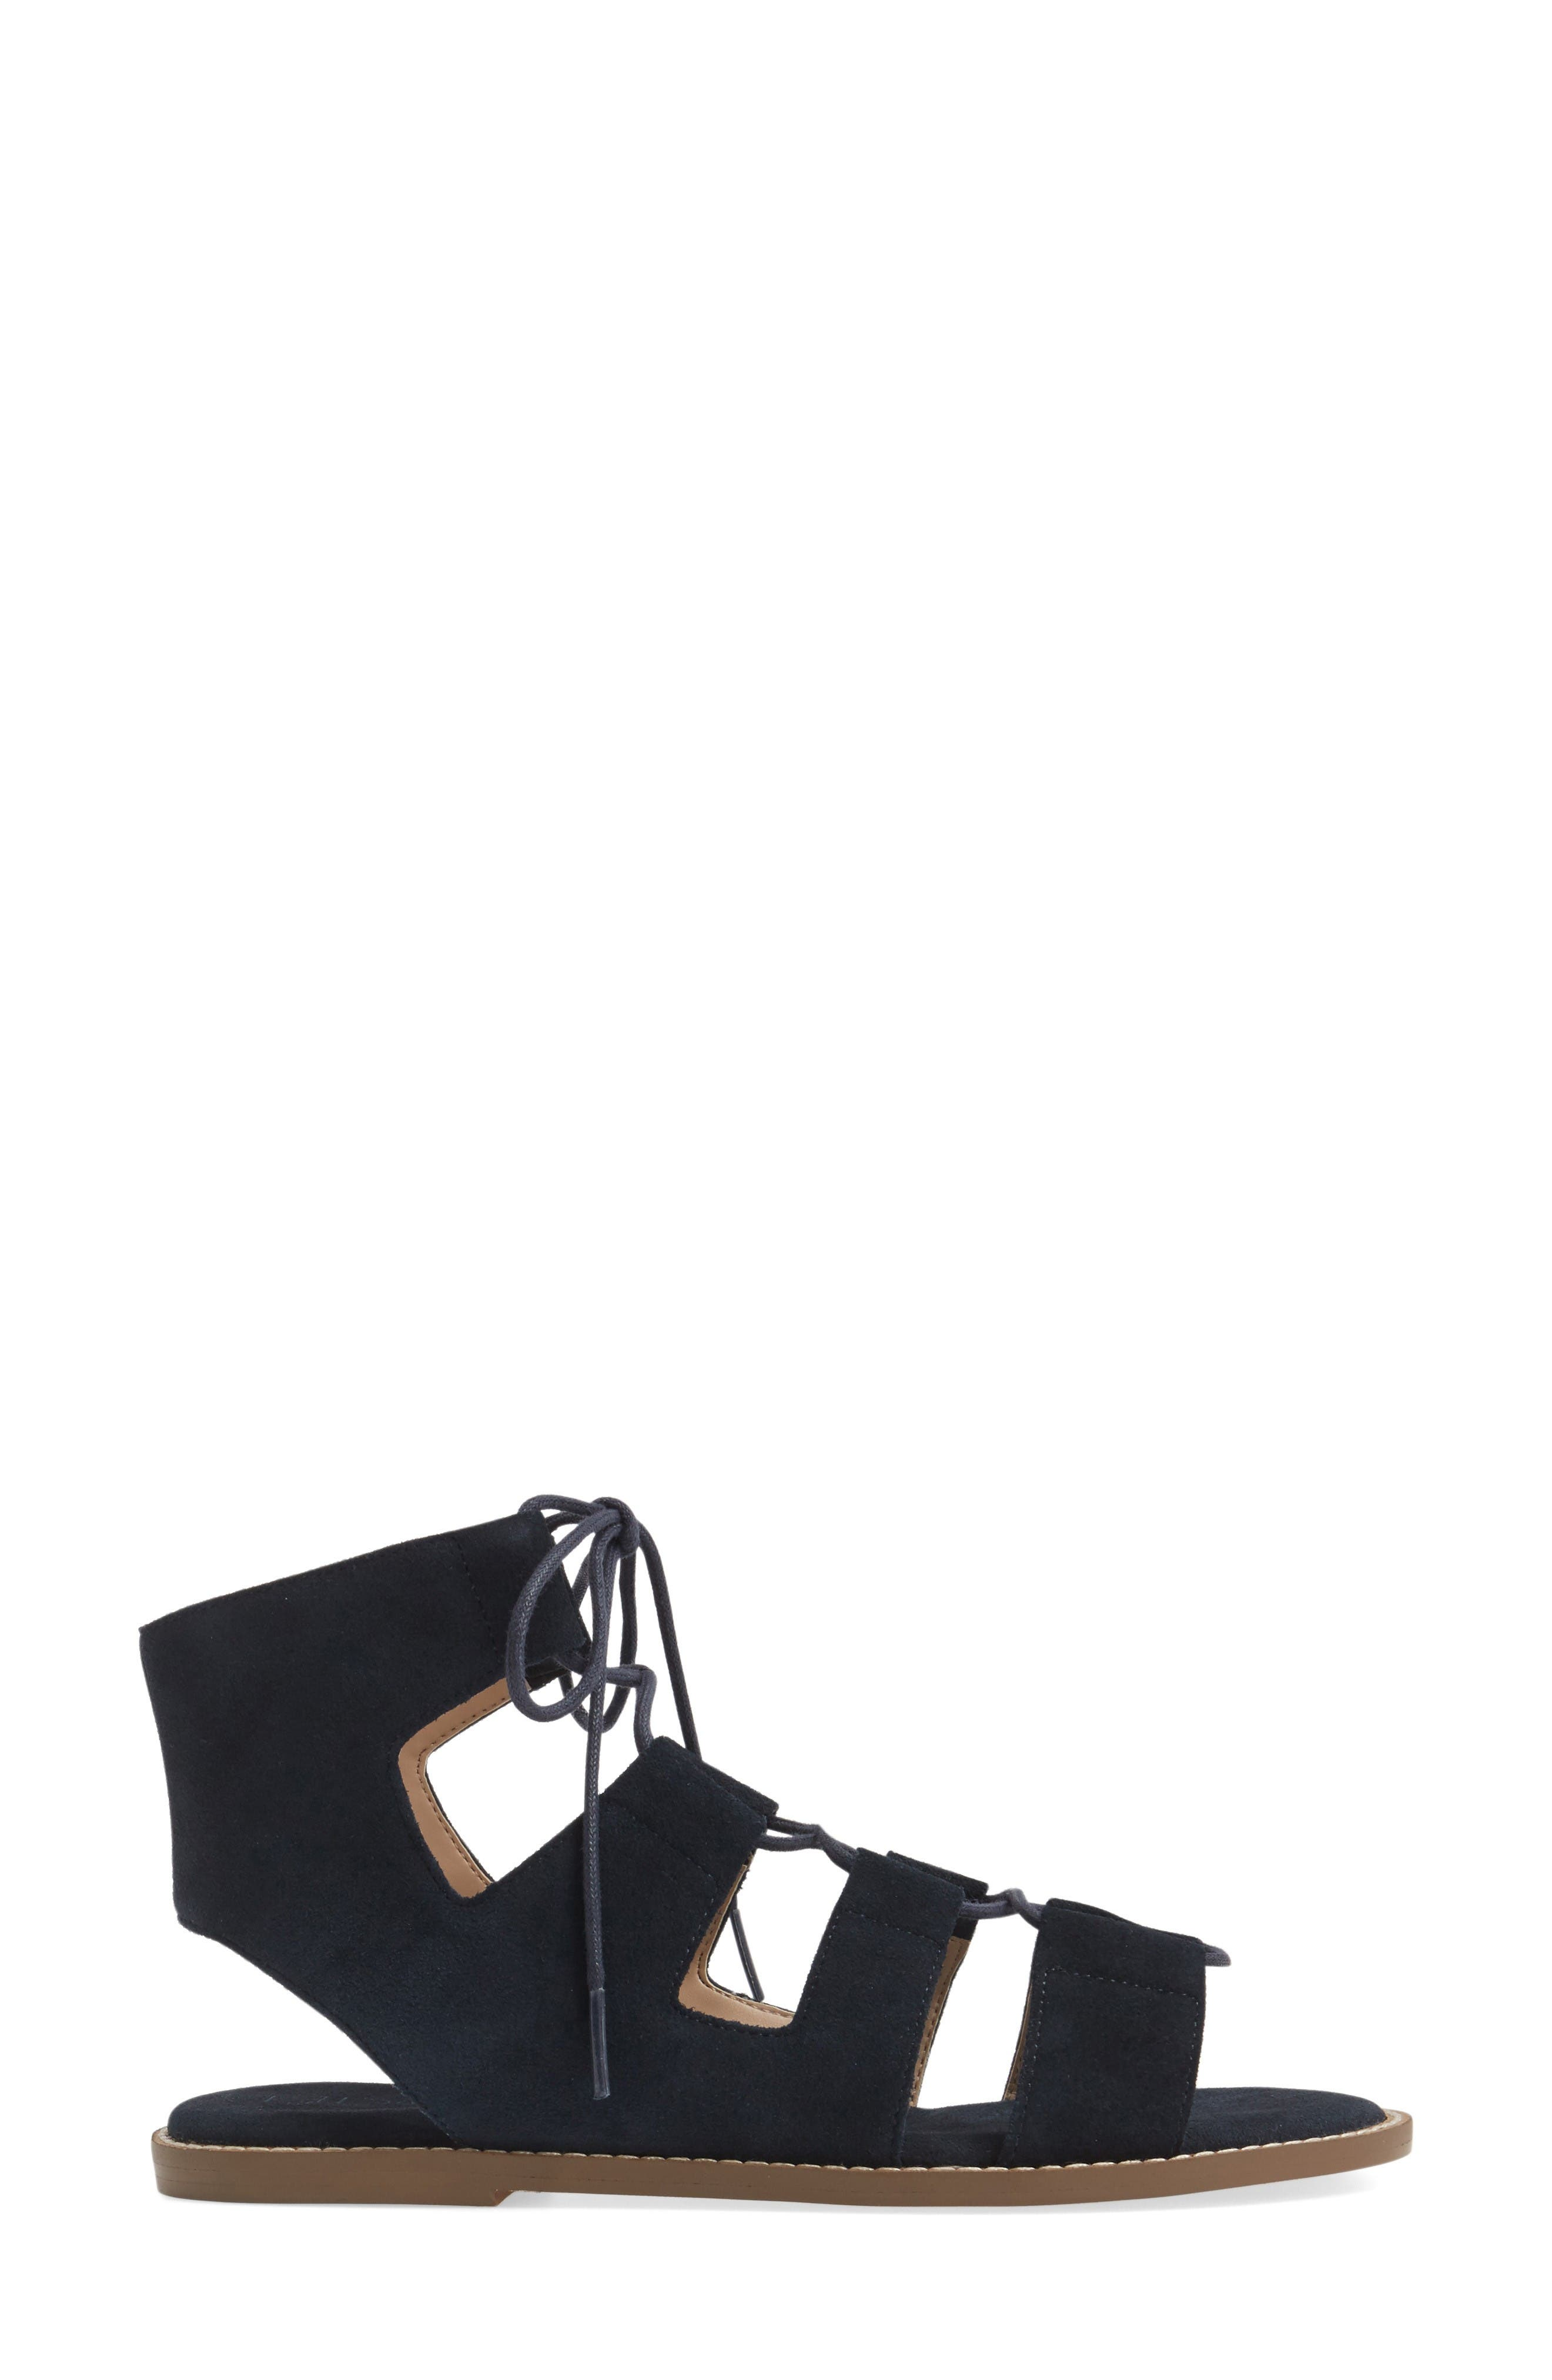 'Cady' Lace-Up Flat Sandal,                             Alternate thumbnail 3, color,                             Ink Navy Suede